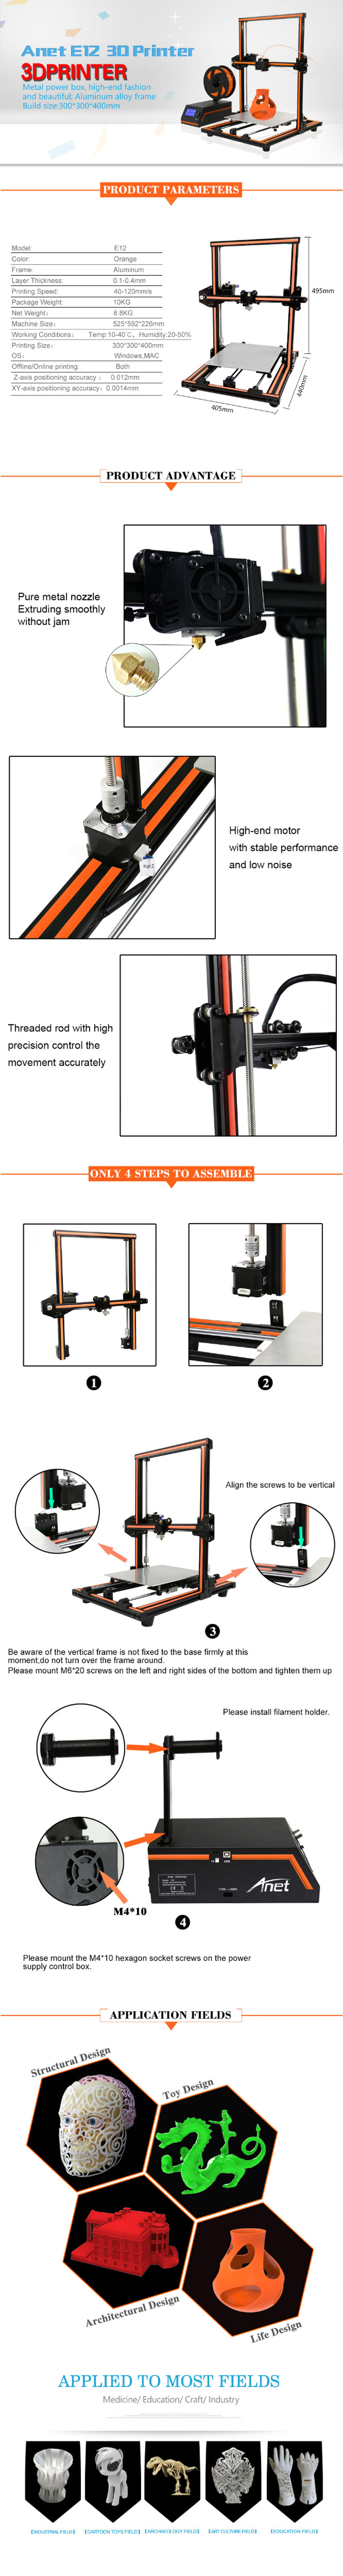 Anet E10 E12 A4 3D Printer Aluminium Frame Hoge precisie Desktop 3d-printer Kits Reprap DIY Kit Set Off-line Printing Grote Maat